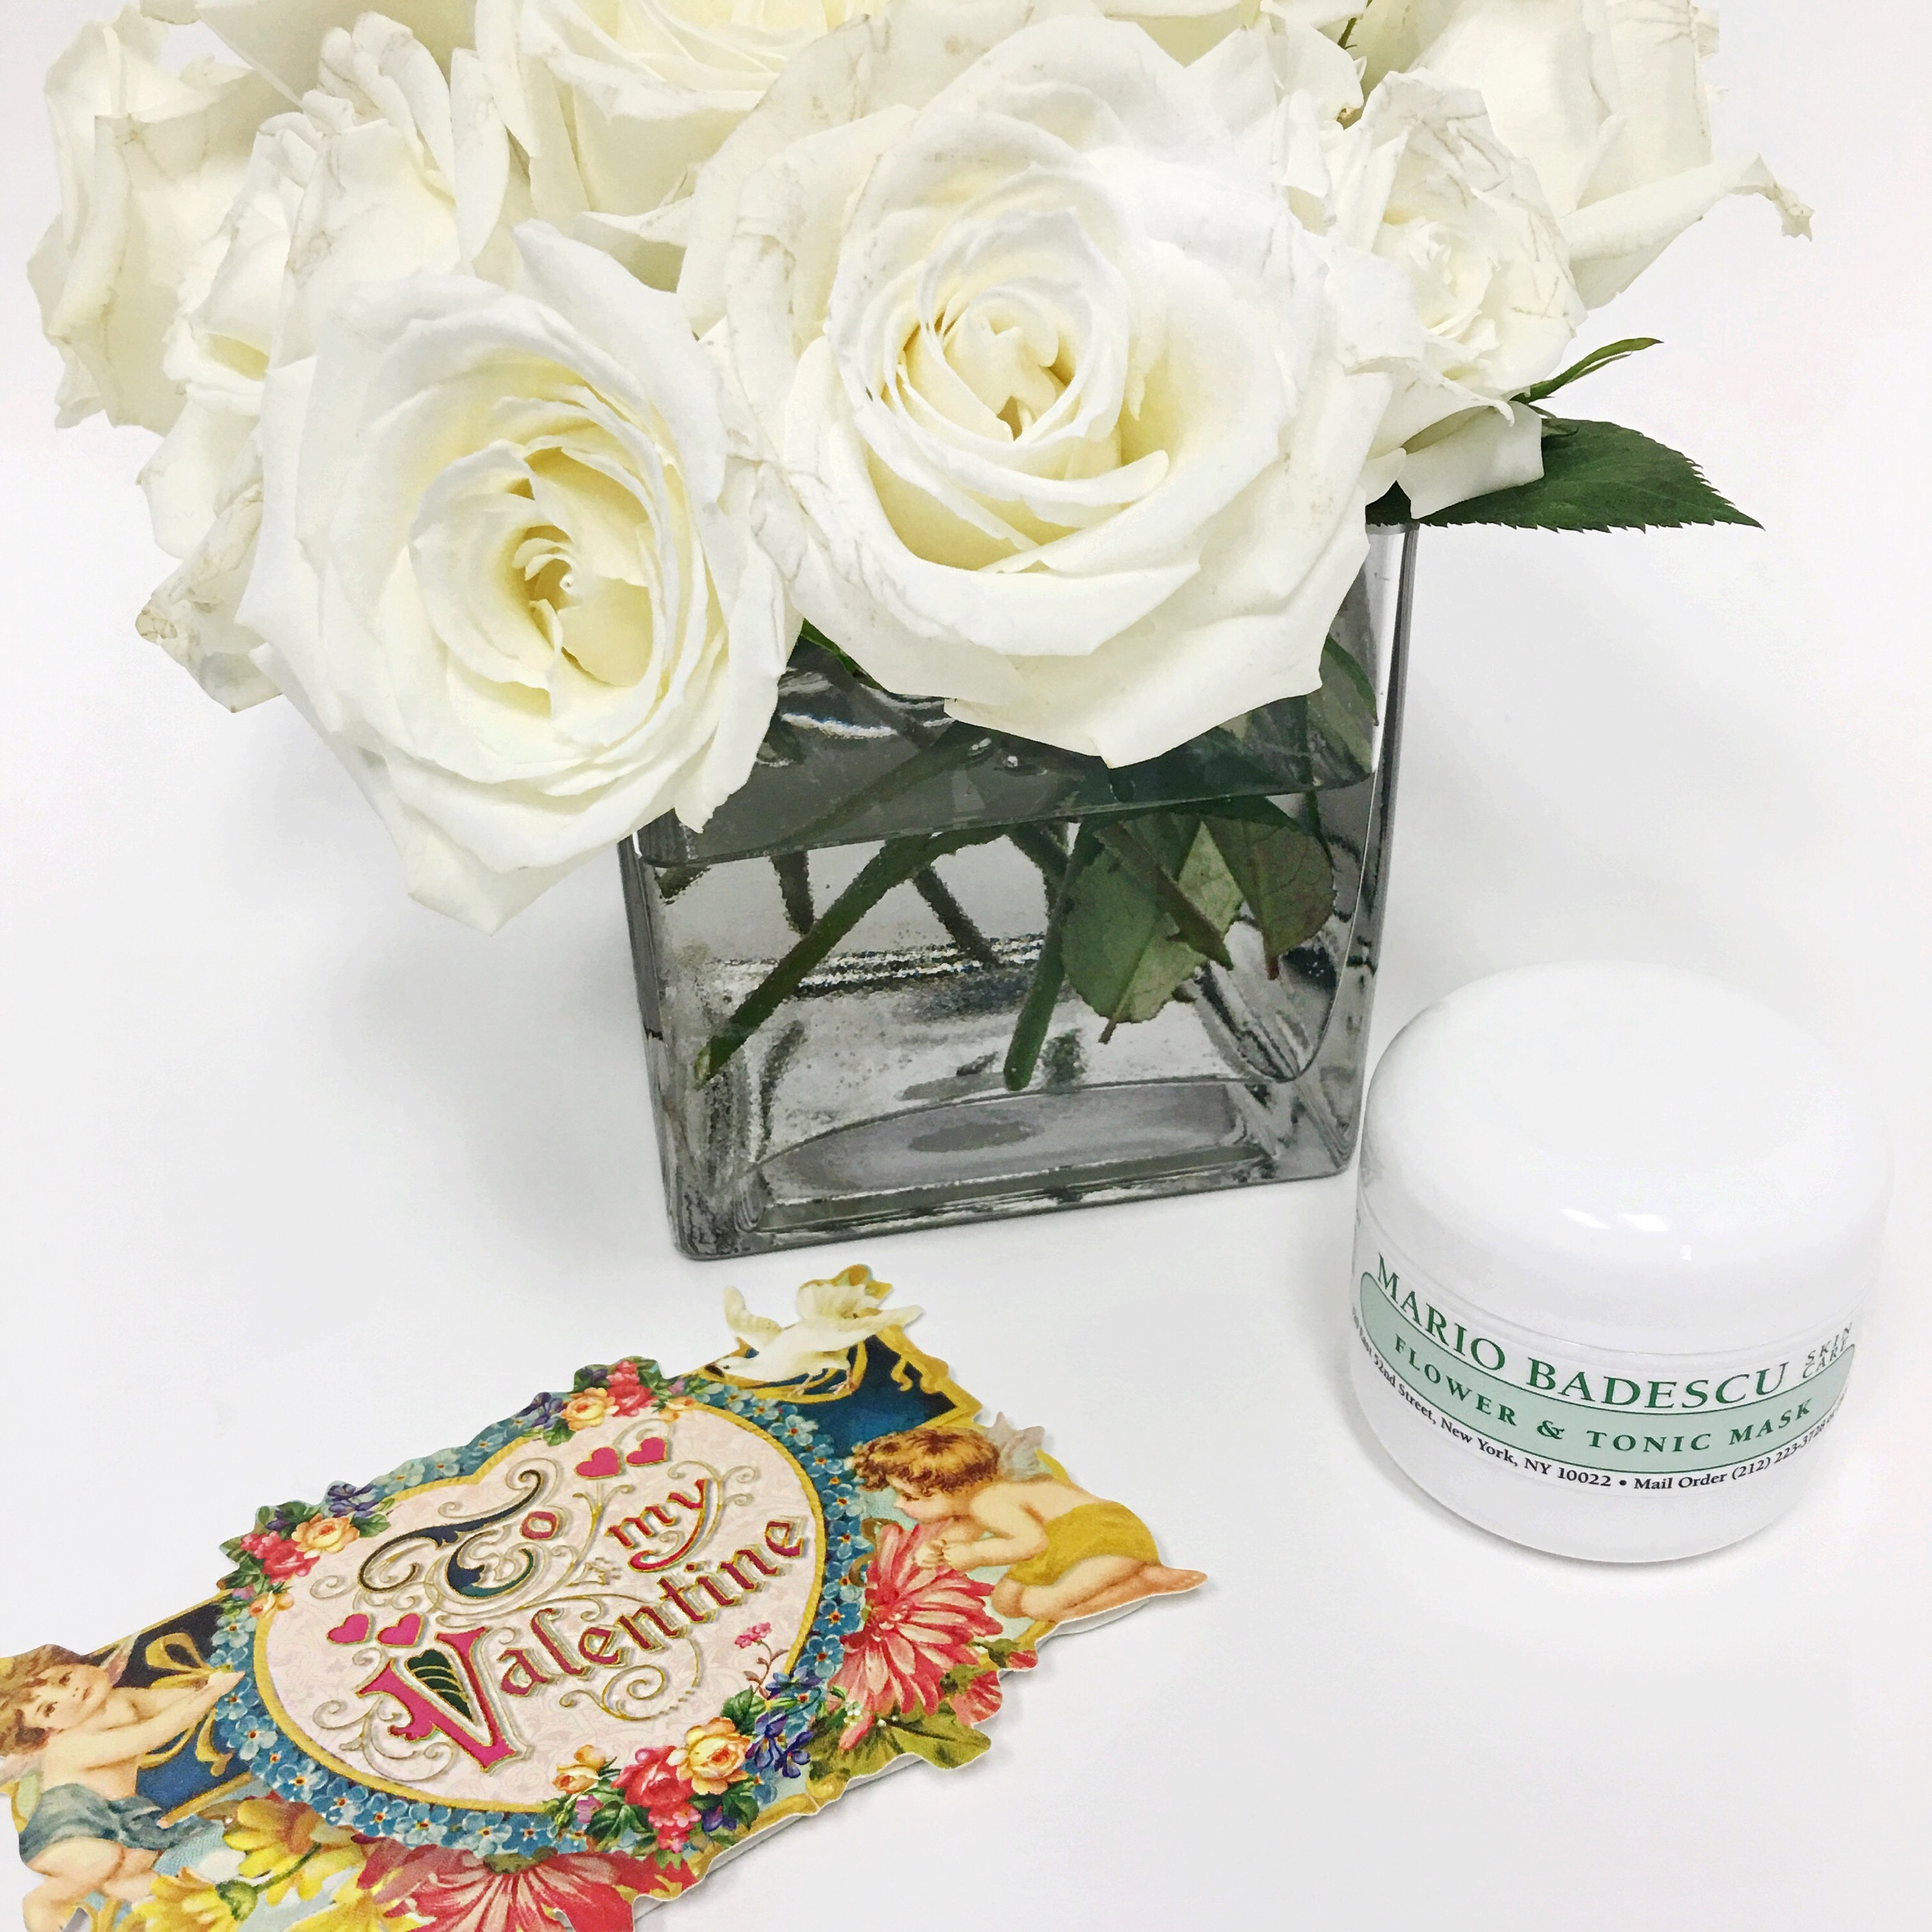 mario badescu valentine's day gift guide vintage white roses -, Ideas